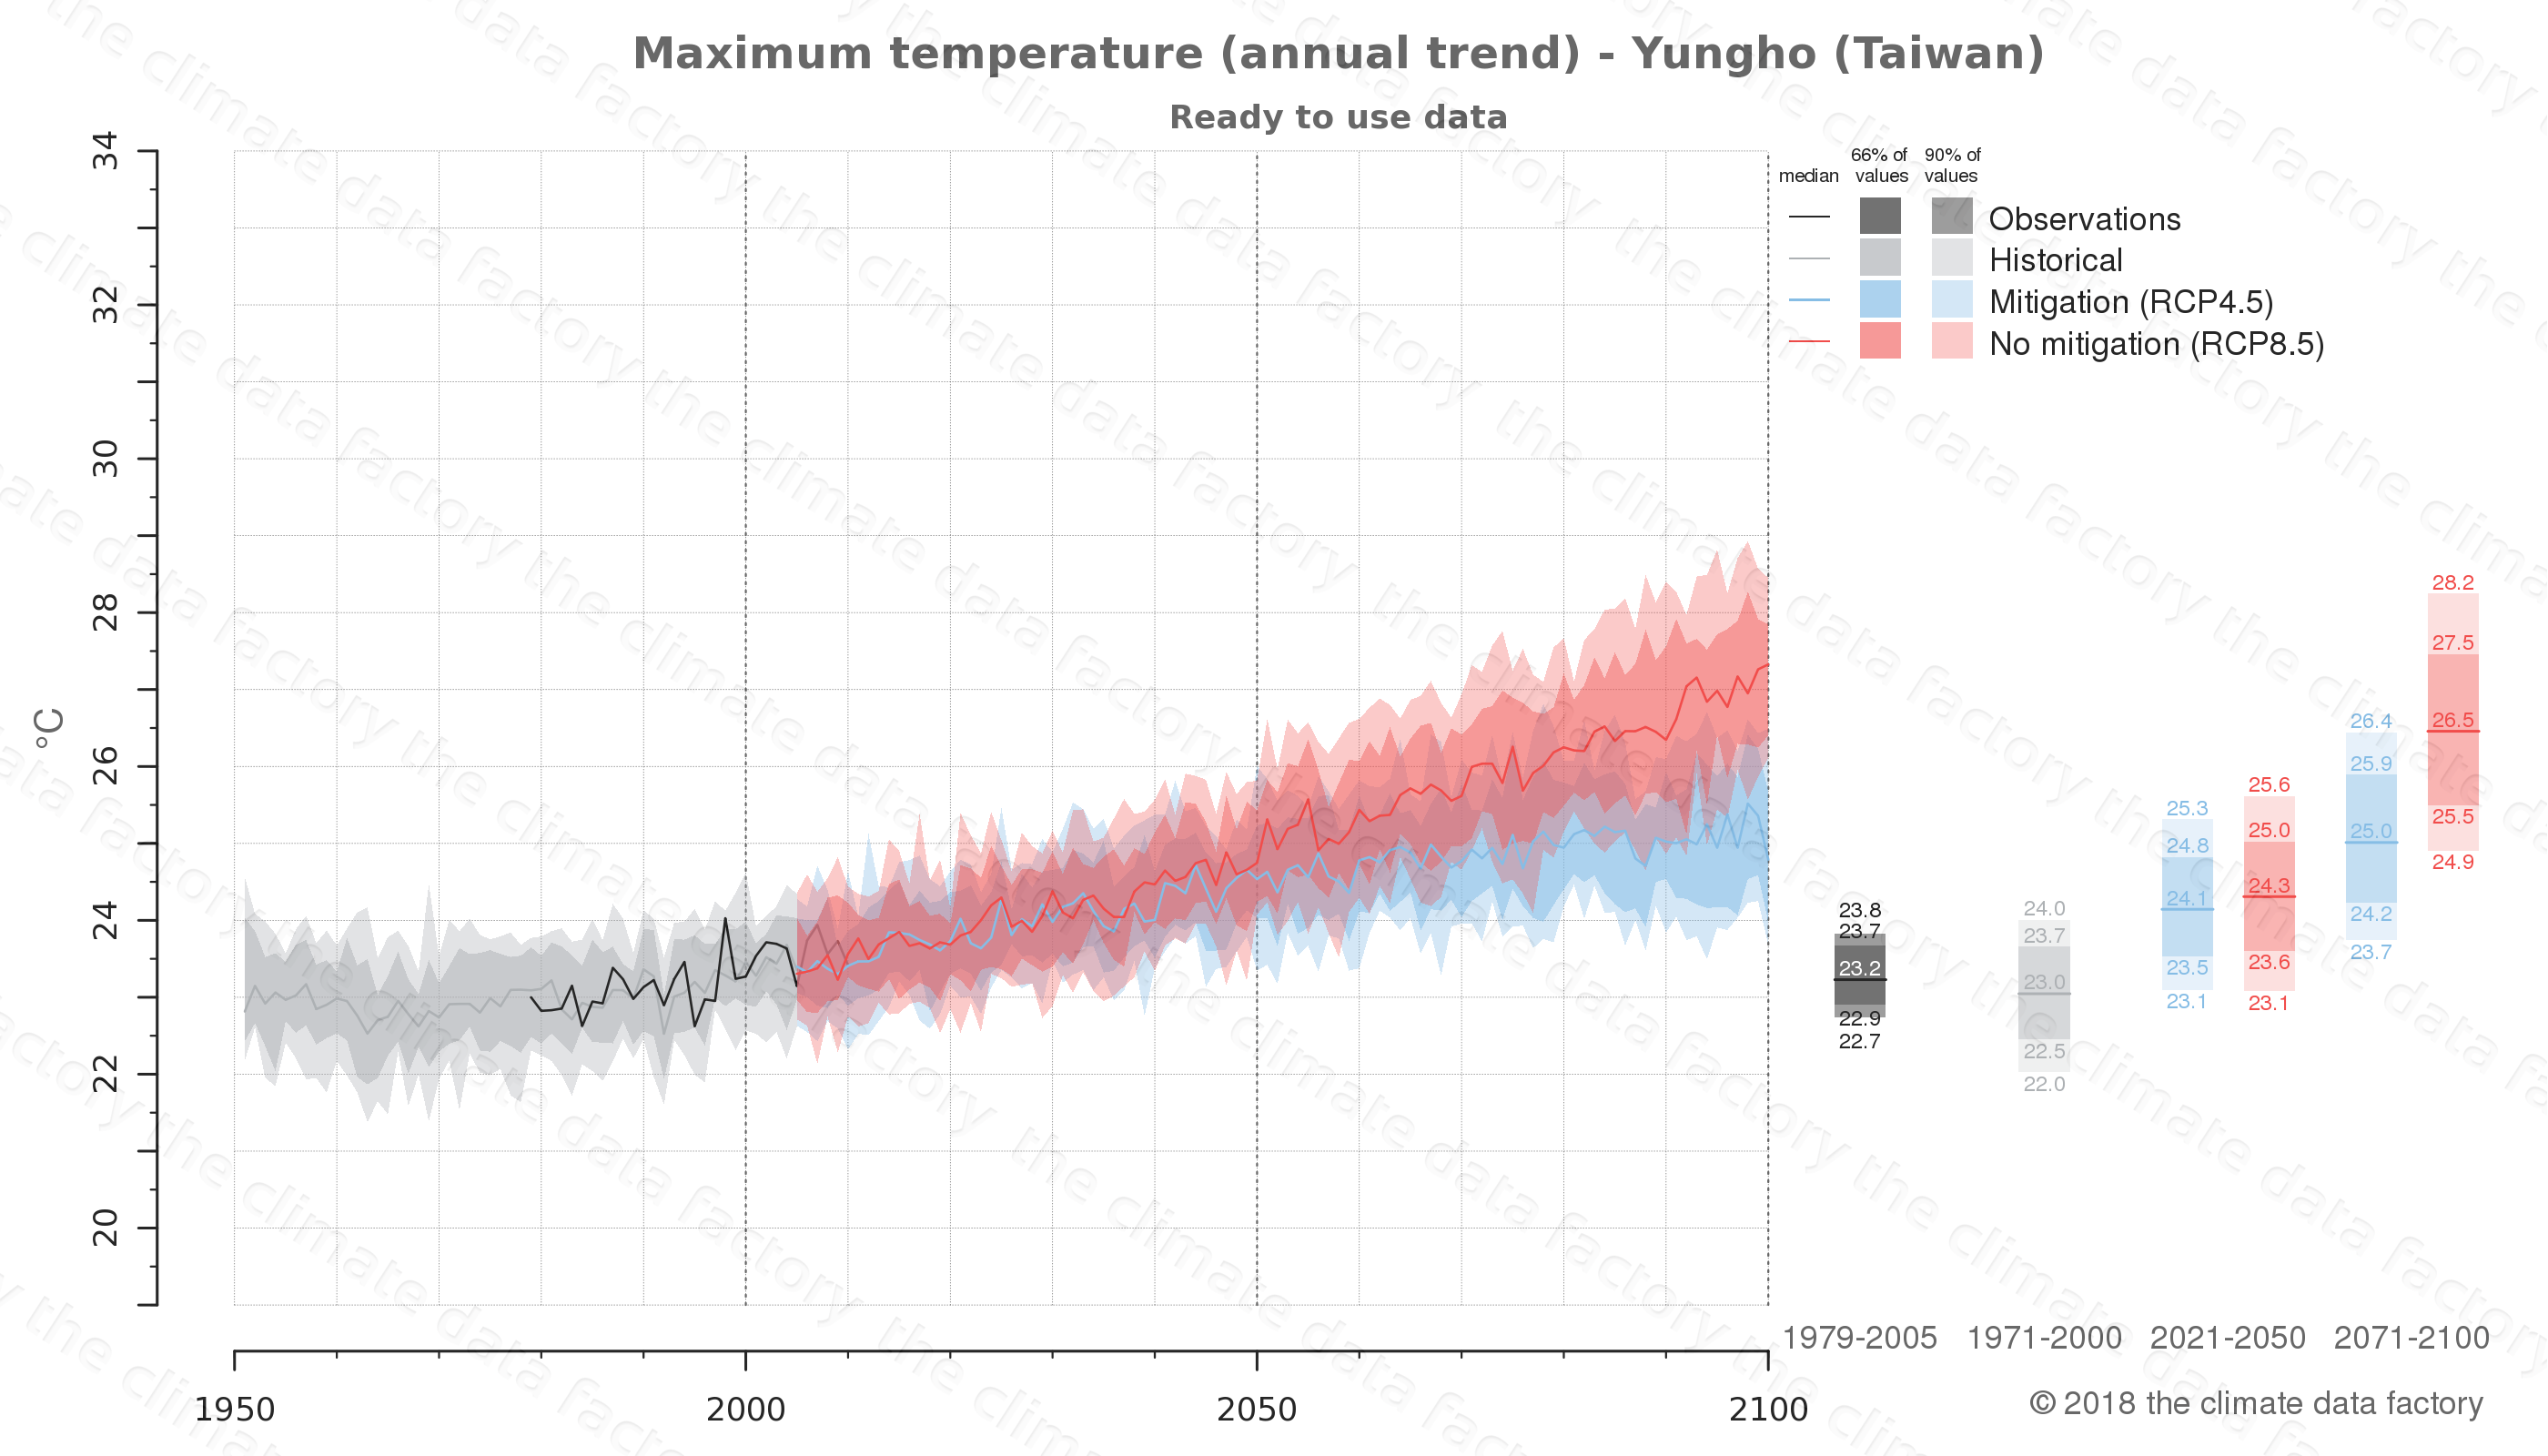 climate change data policy adaptation climate graph city data maximum-temperature yungho taiwan